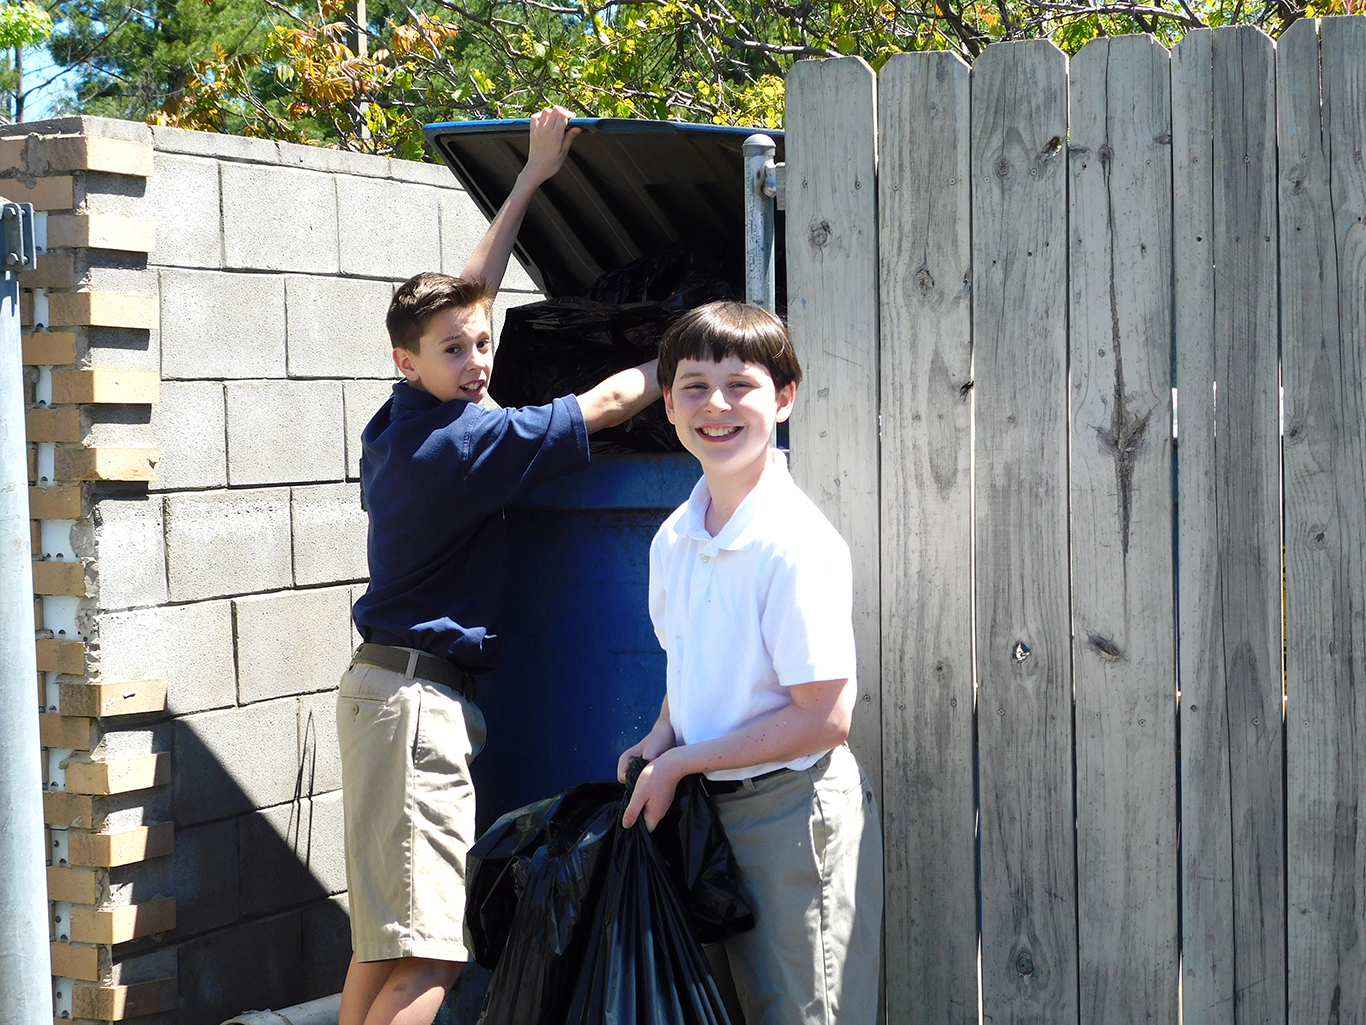 Sixth Graders on Trash Duty